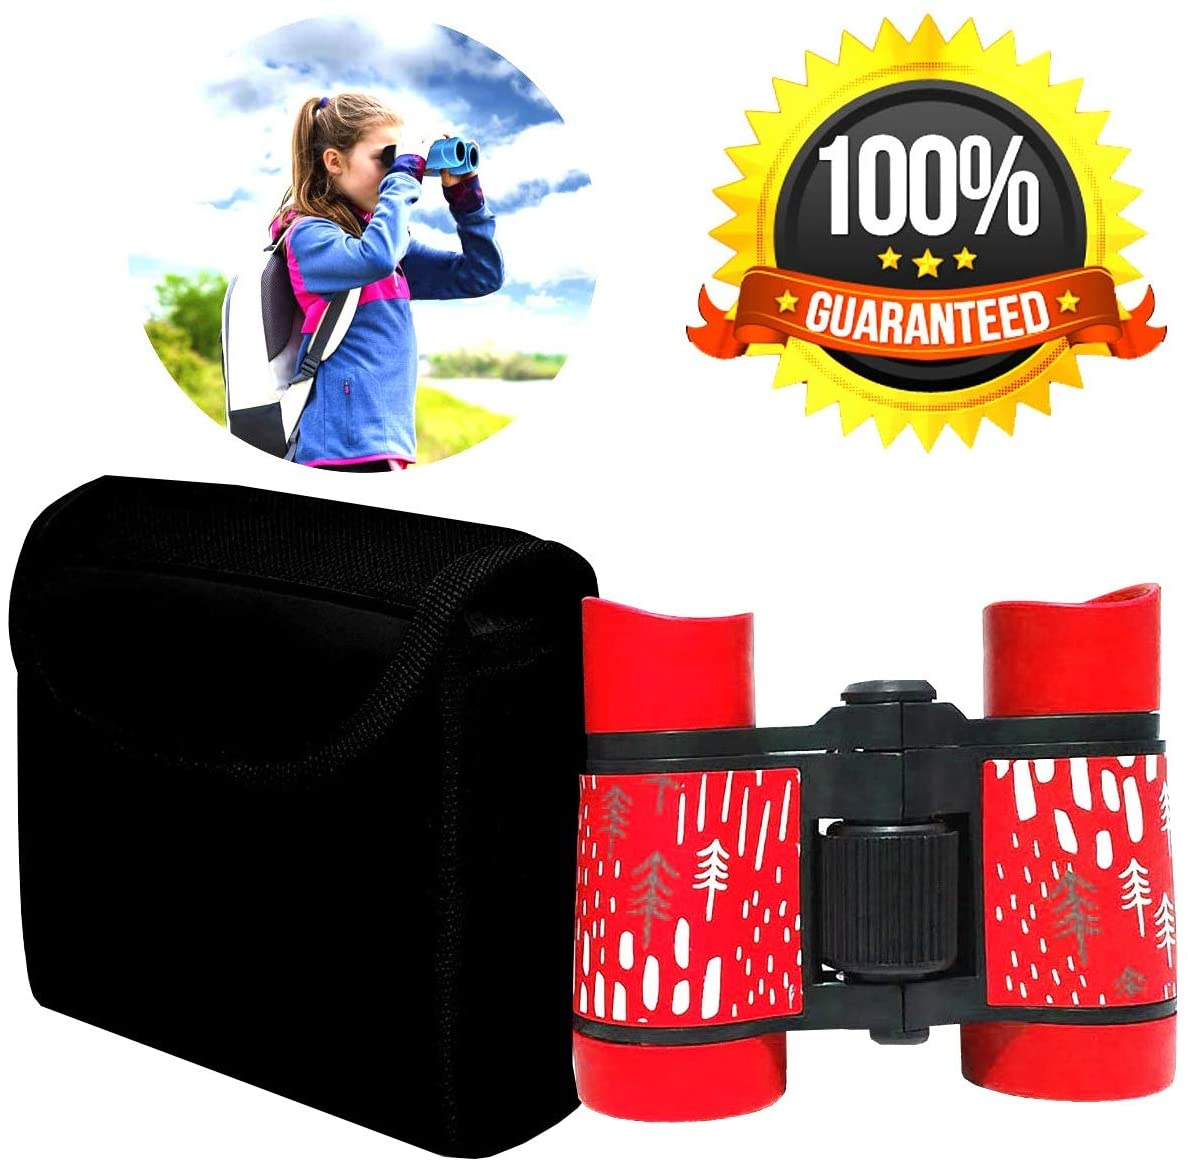 Kid Binoculars Shock Proof Toy Binoculars Set - Bird Watching - Educational Learning - Presents for Kids - Children Gifts - Boys and Girls - Outdoor Play - Hunting - Hiking - Camping Gear(Red)